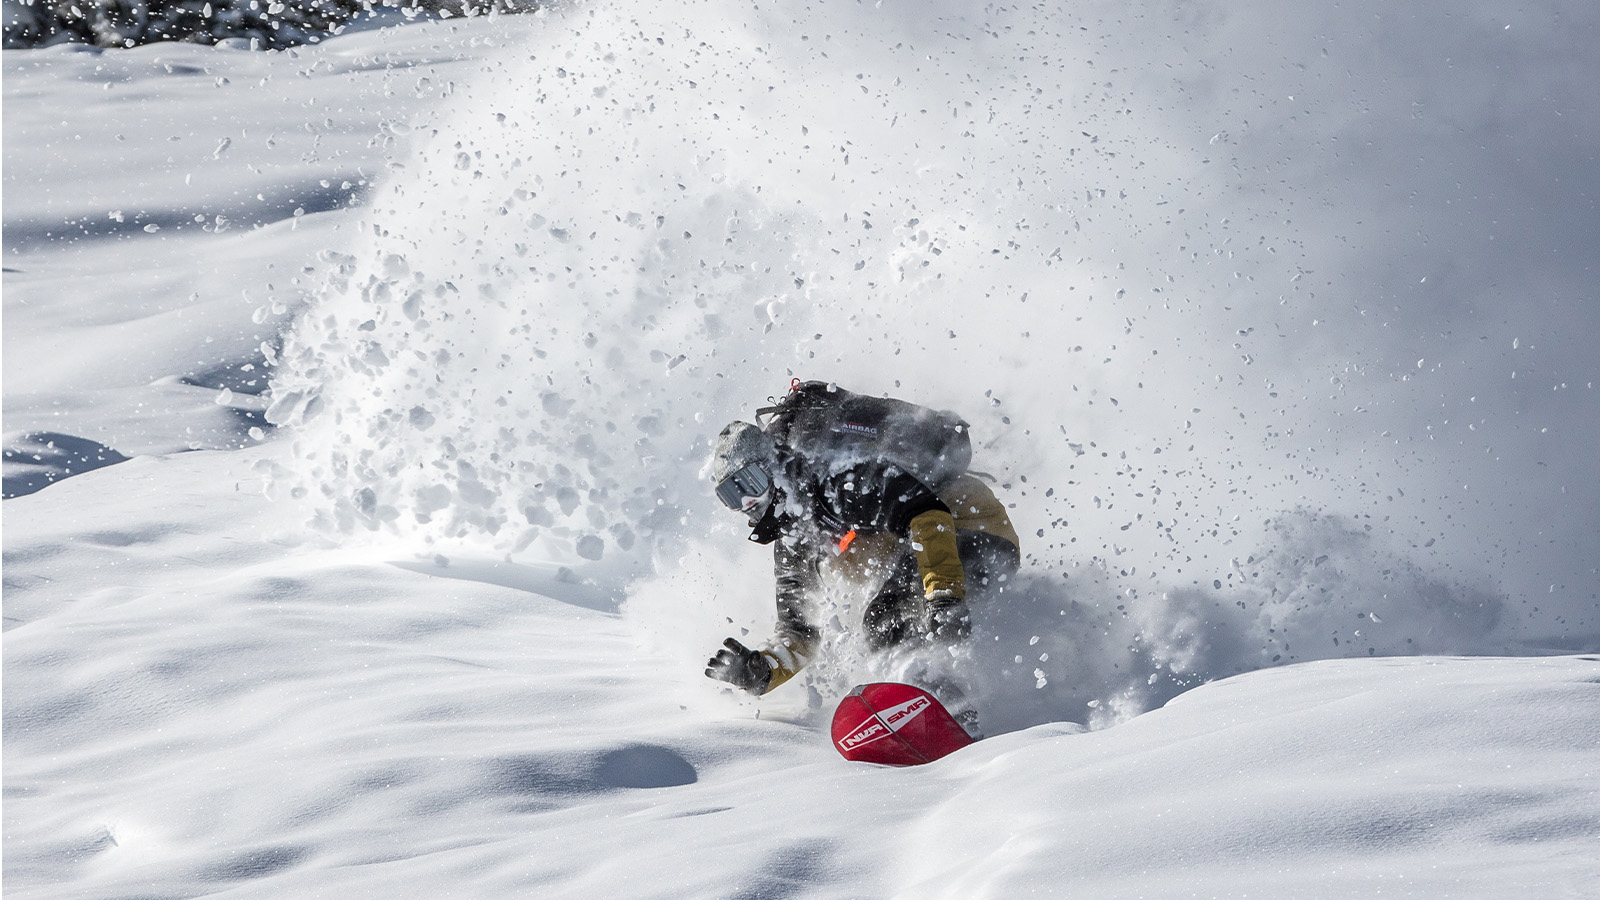 Never Summer FW20/21 Snowboard Preview